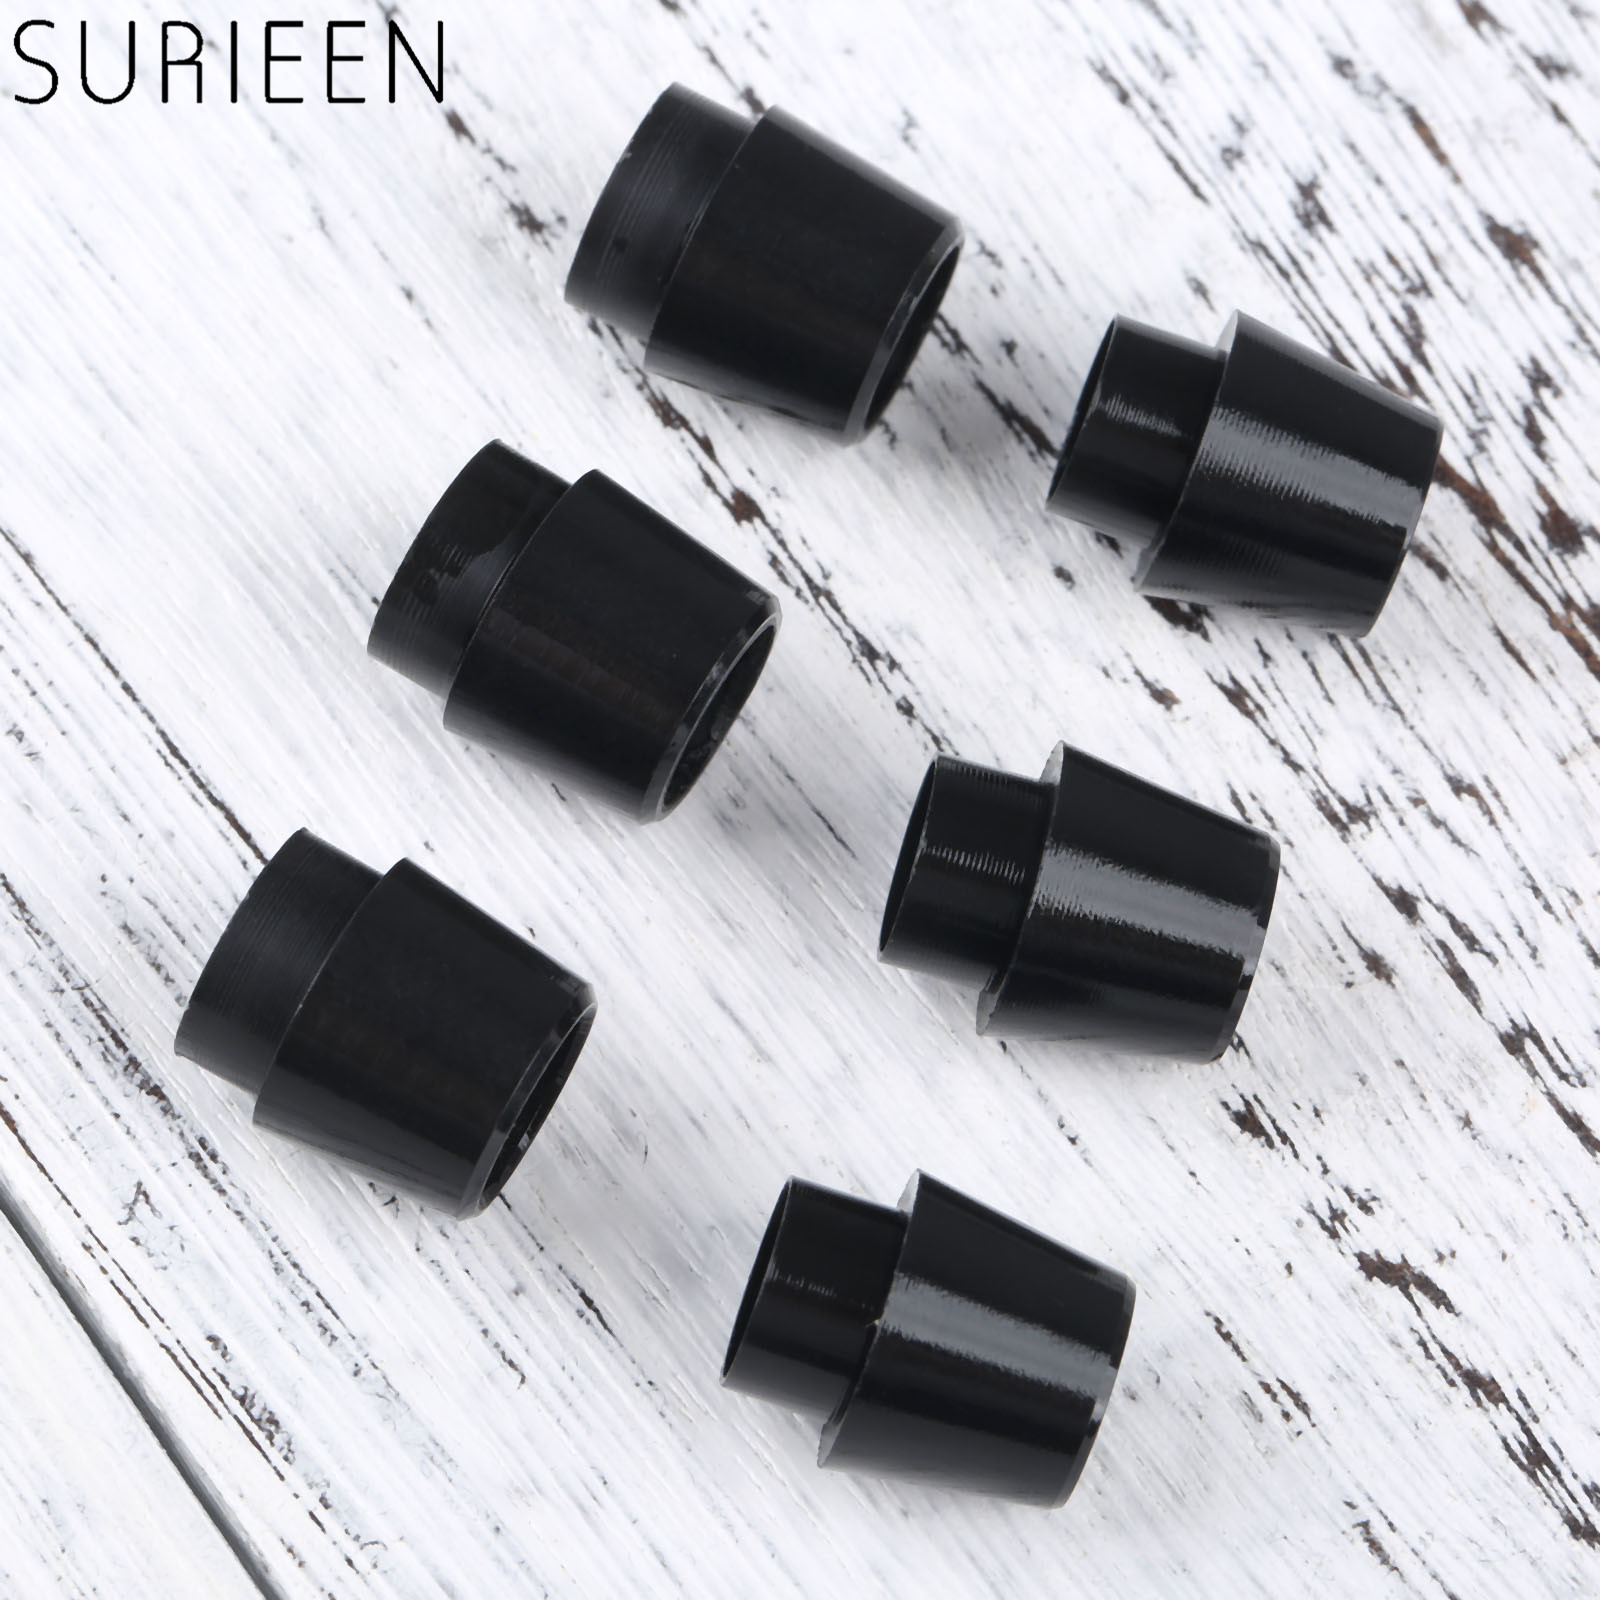 SURIEEN 5Pcs/Lot Black Golf Ferrules Fit For Callaway 815 RAZRX-hot2 Shaft Sleeve Adapter Tip Size 0.335 /0.350 Golf Accessories